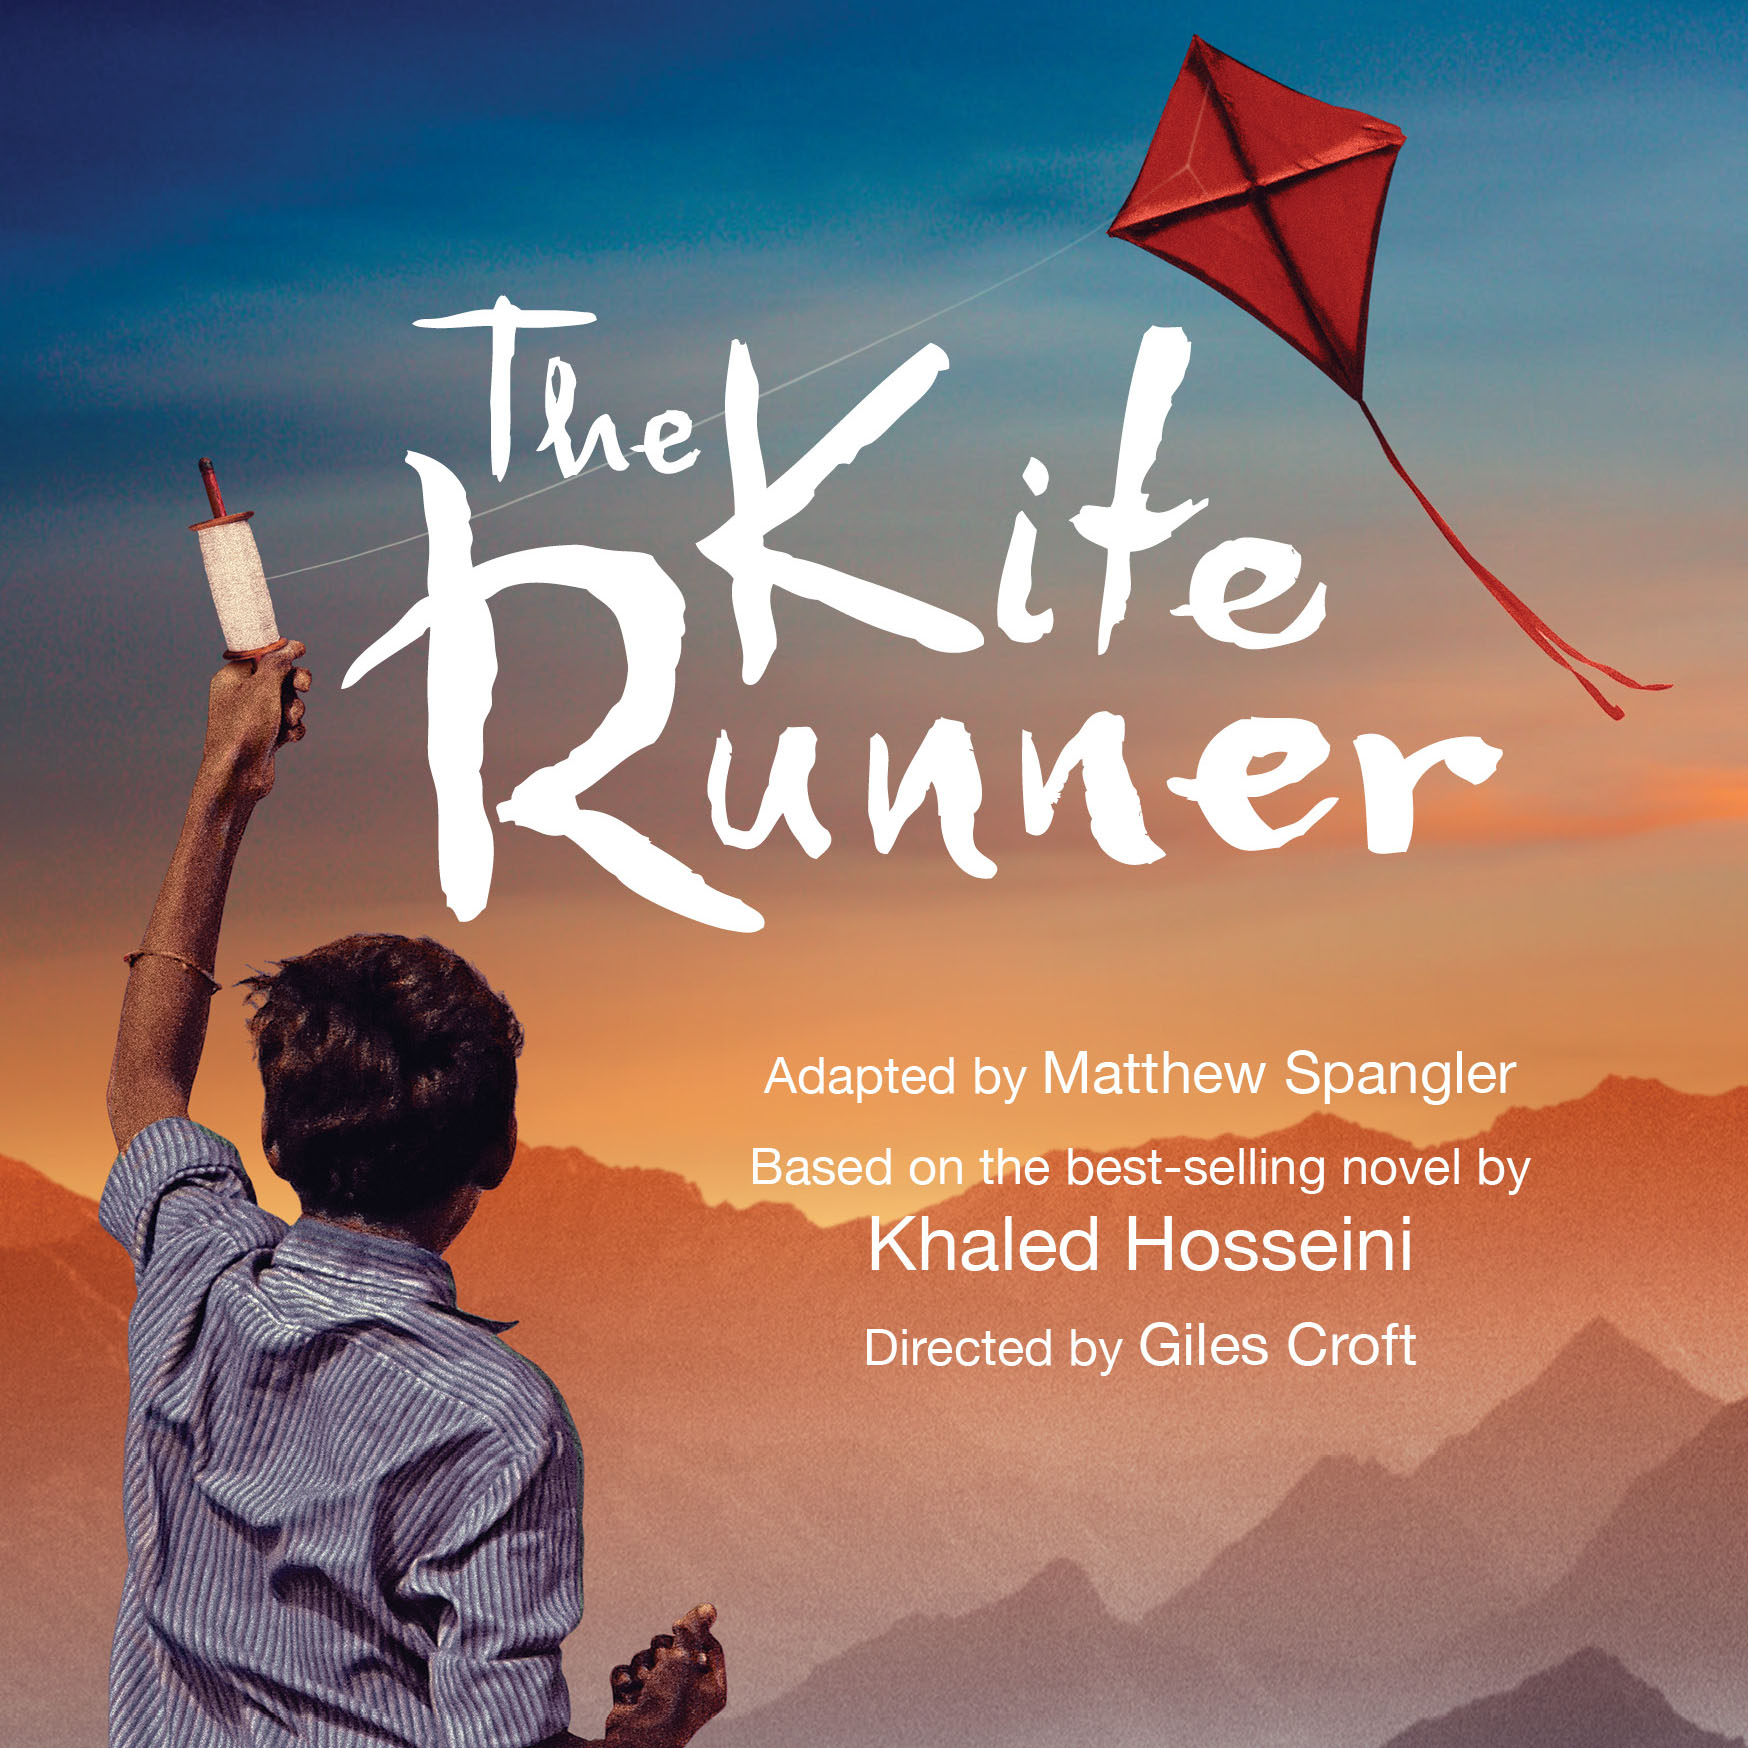 kite runner review The kite runner is a favorable novel it has hit the hearts of many people and became a bestseller after being printed in paperback and was popularized in many book clubs it was a number one new york times bestseller for over two years.